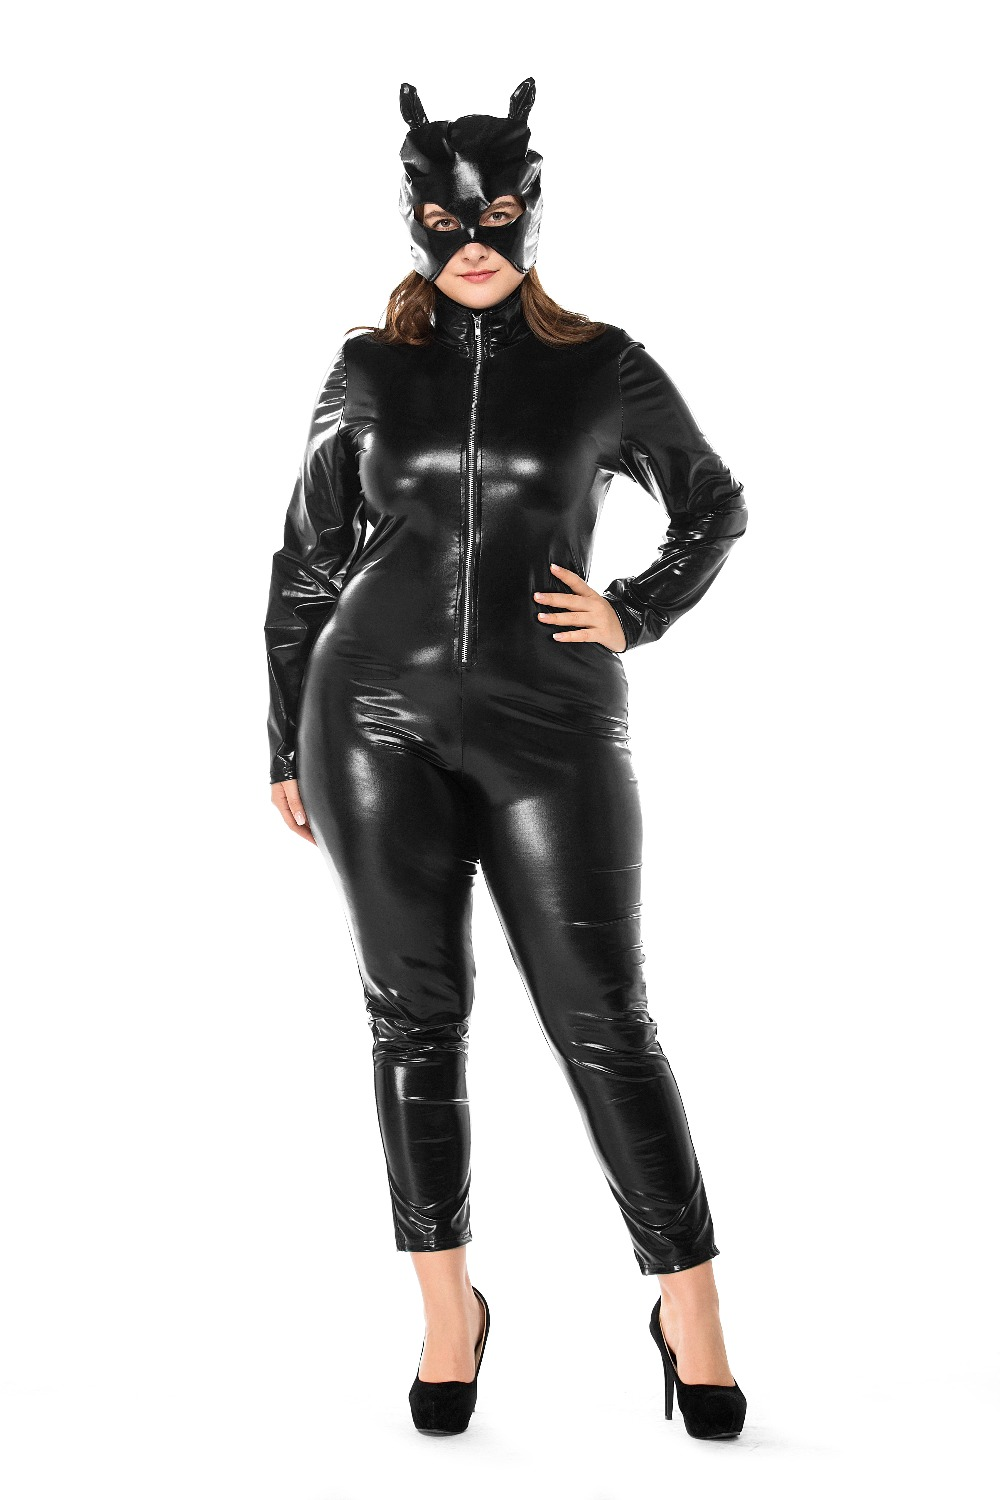 Plus size Sexy Cat Women Latex Catsuit Black Wet Look Faux Leather Bodysuit Erotic Bodycon Jumpsuit Lingerie High Stretch A001